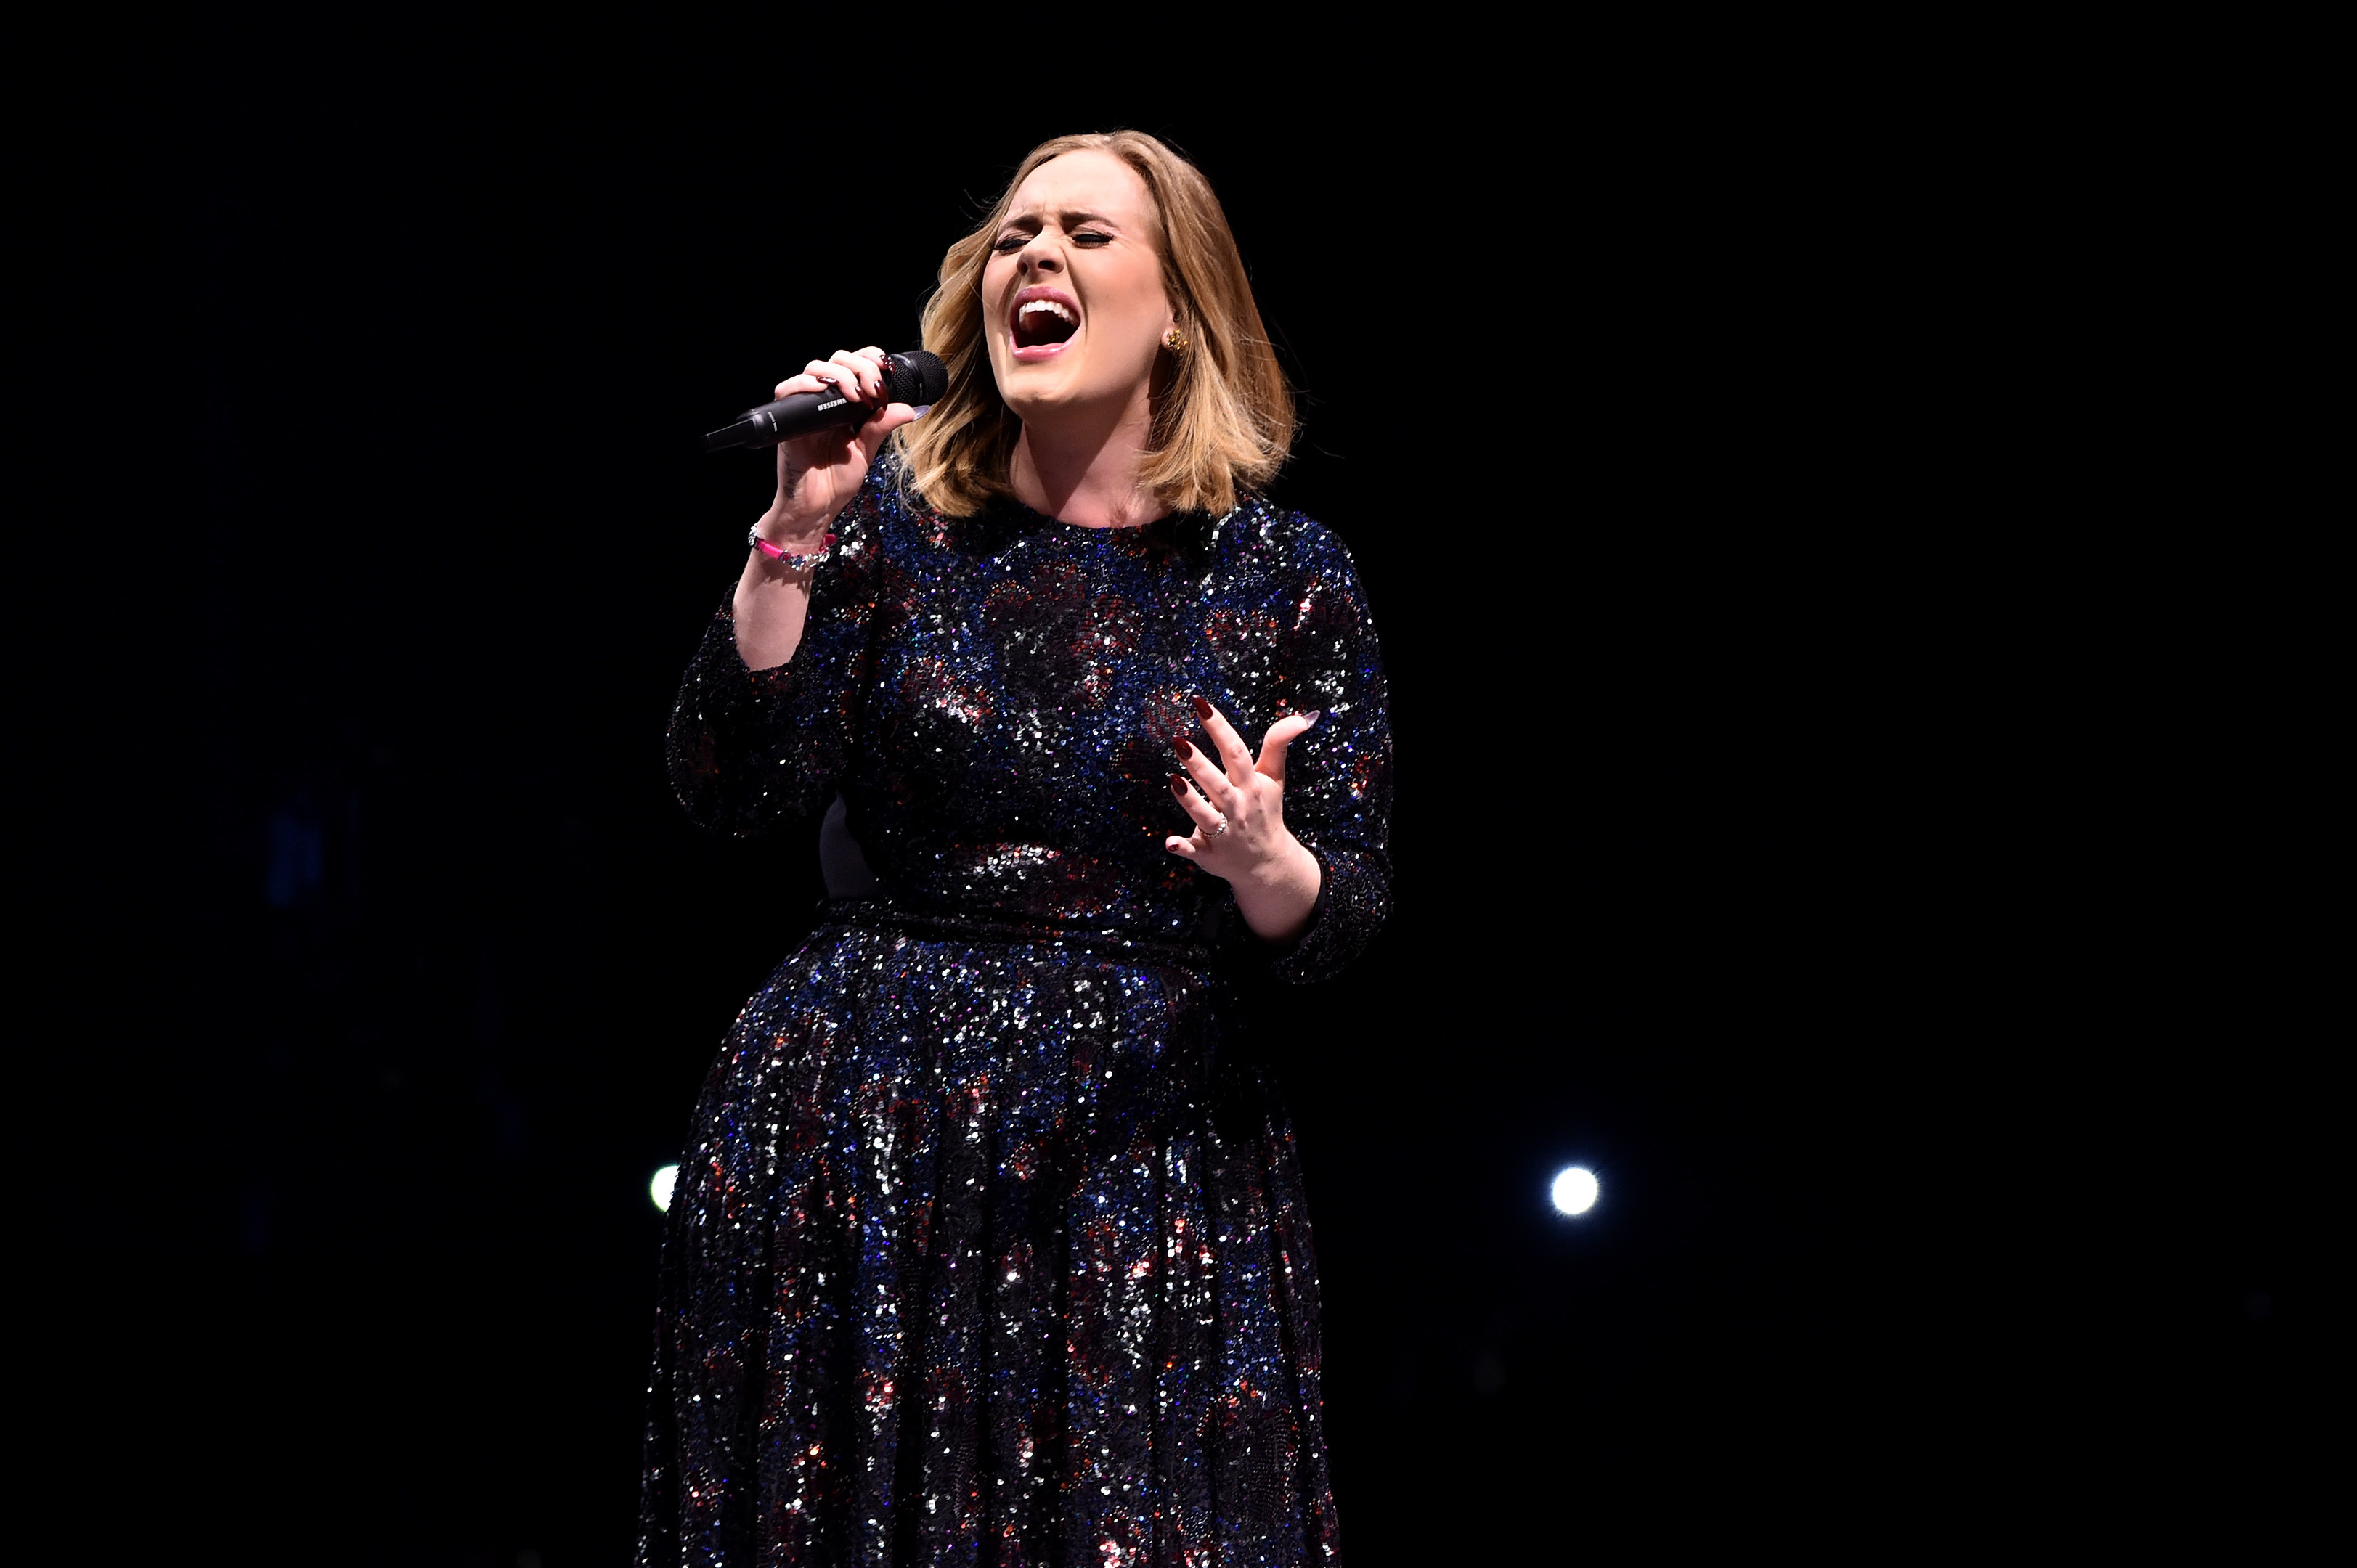 Adele performs at Glasgow's SSE Hydro (Gareth Cattermole/Getty Images)